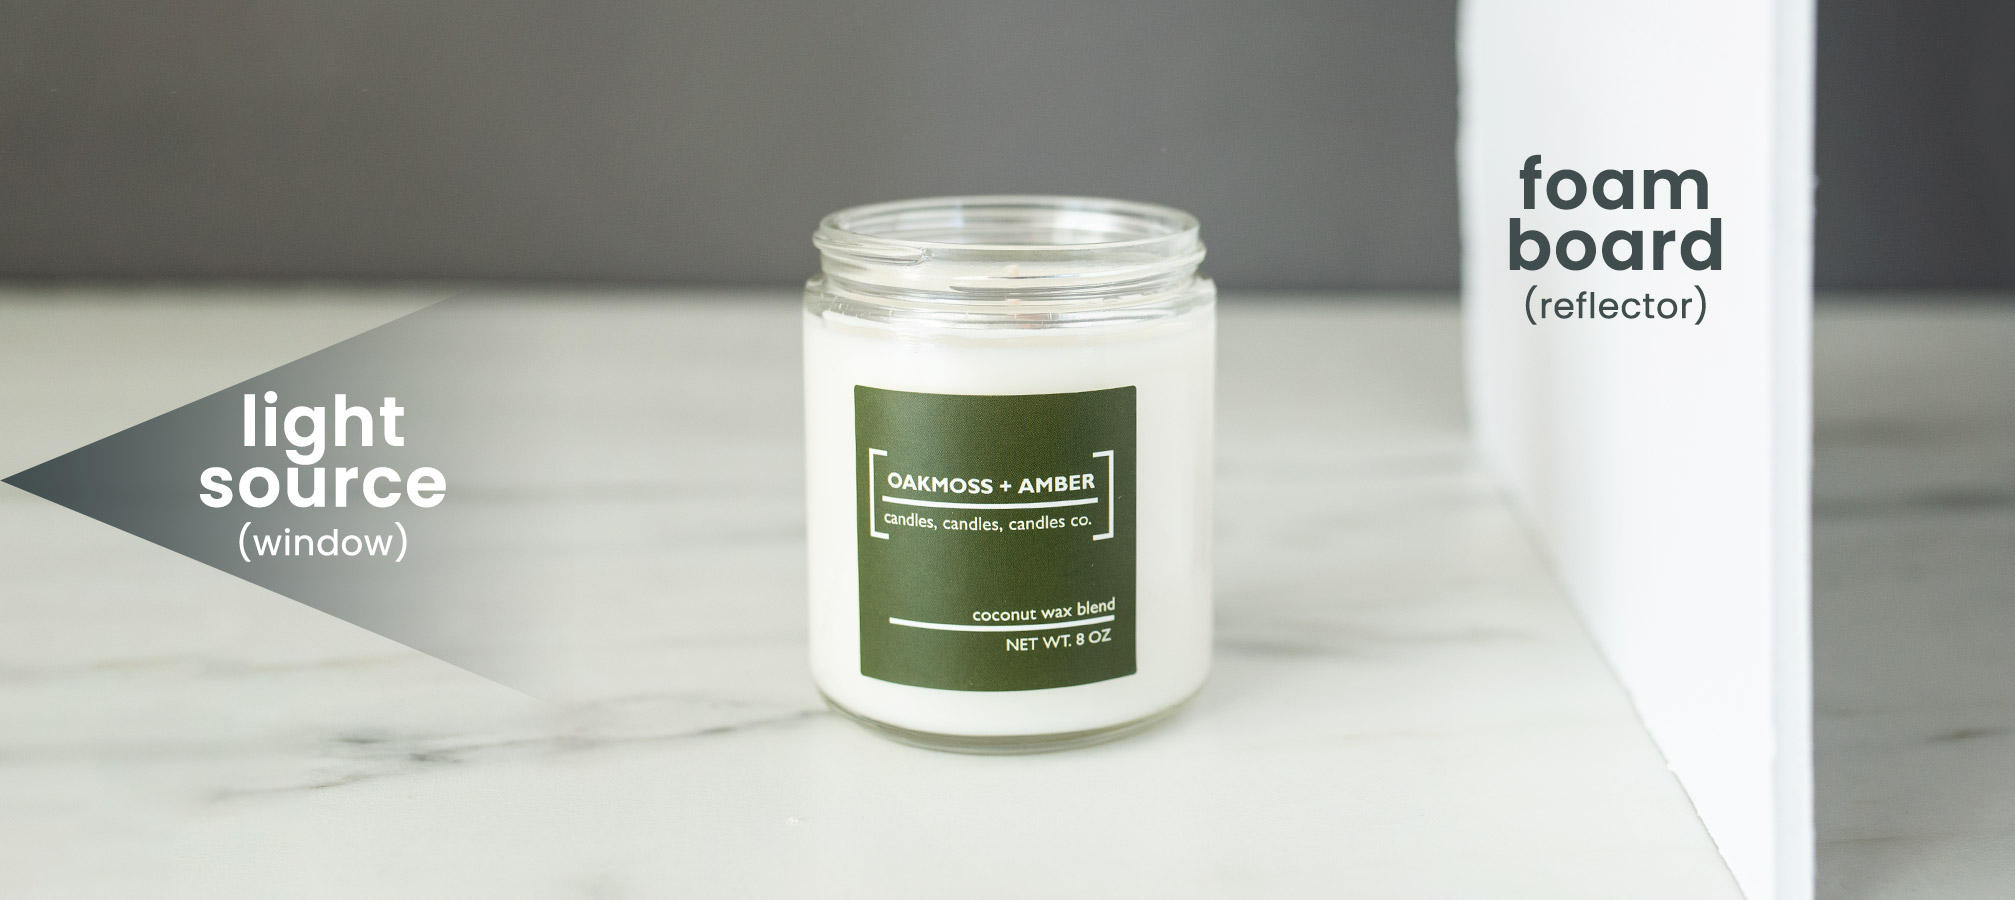 Candle product with natural light source and foam board reflector